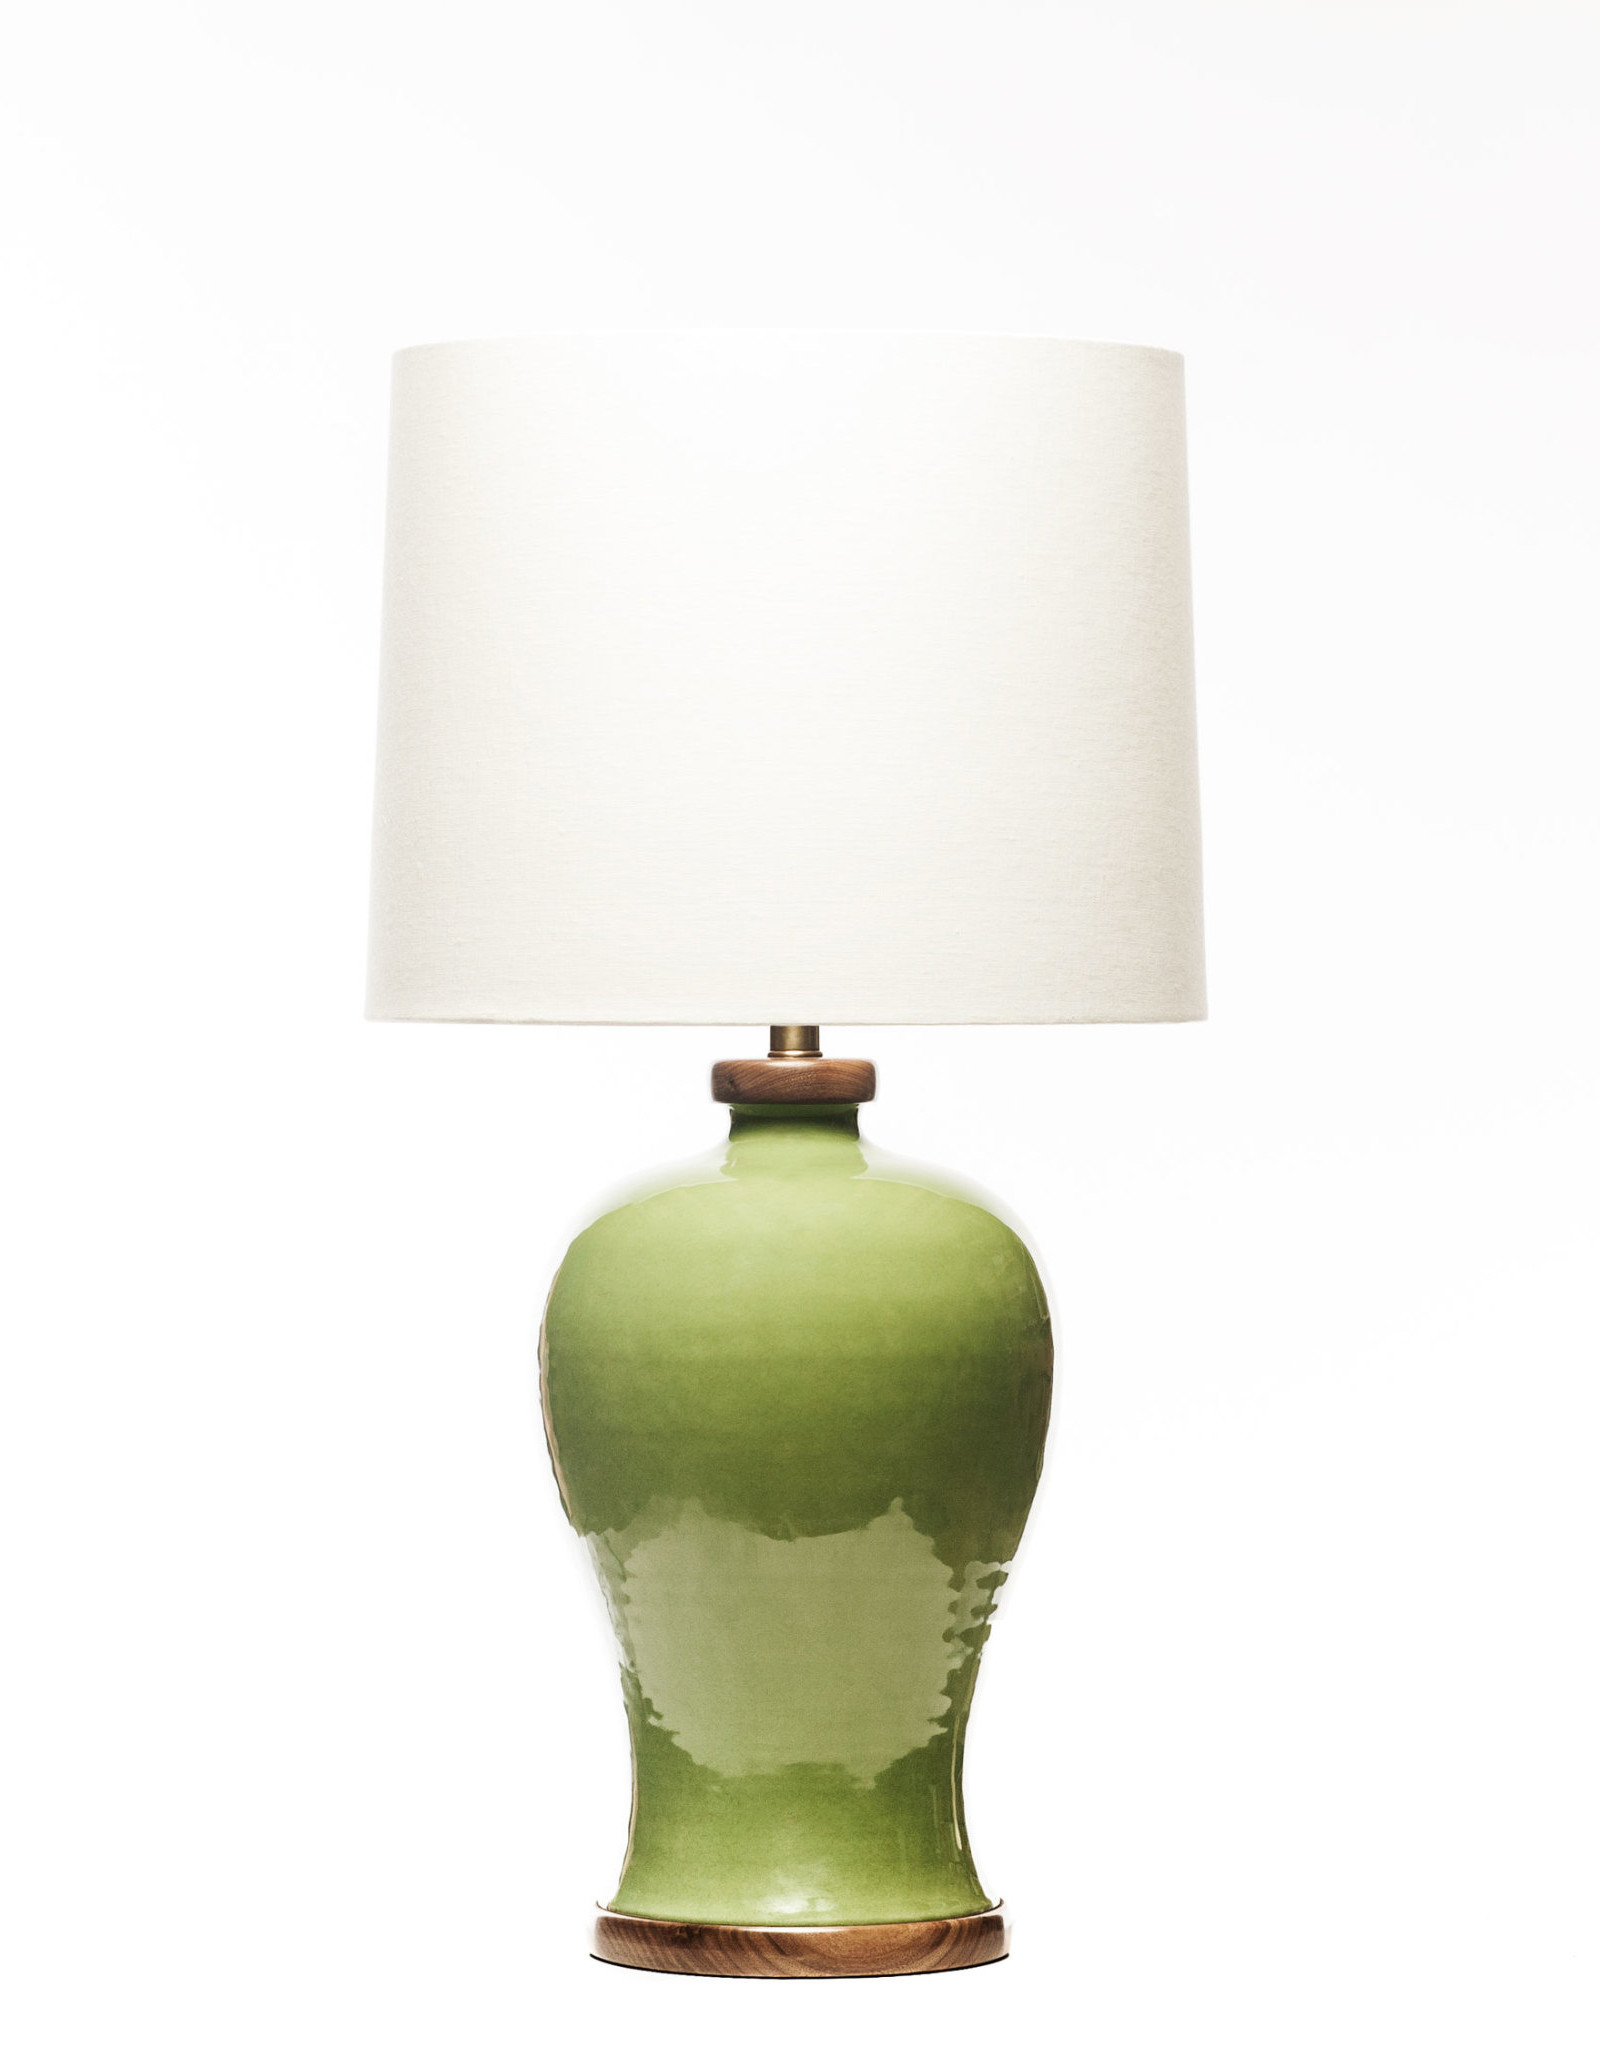 Lawrence & Scott Dashiell Table Lamp in Celadon with Walnut Base